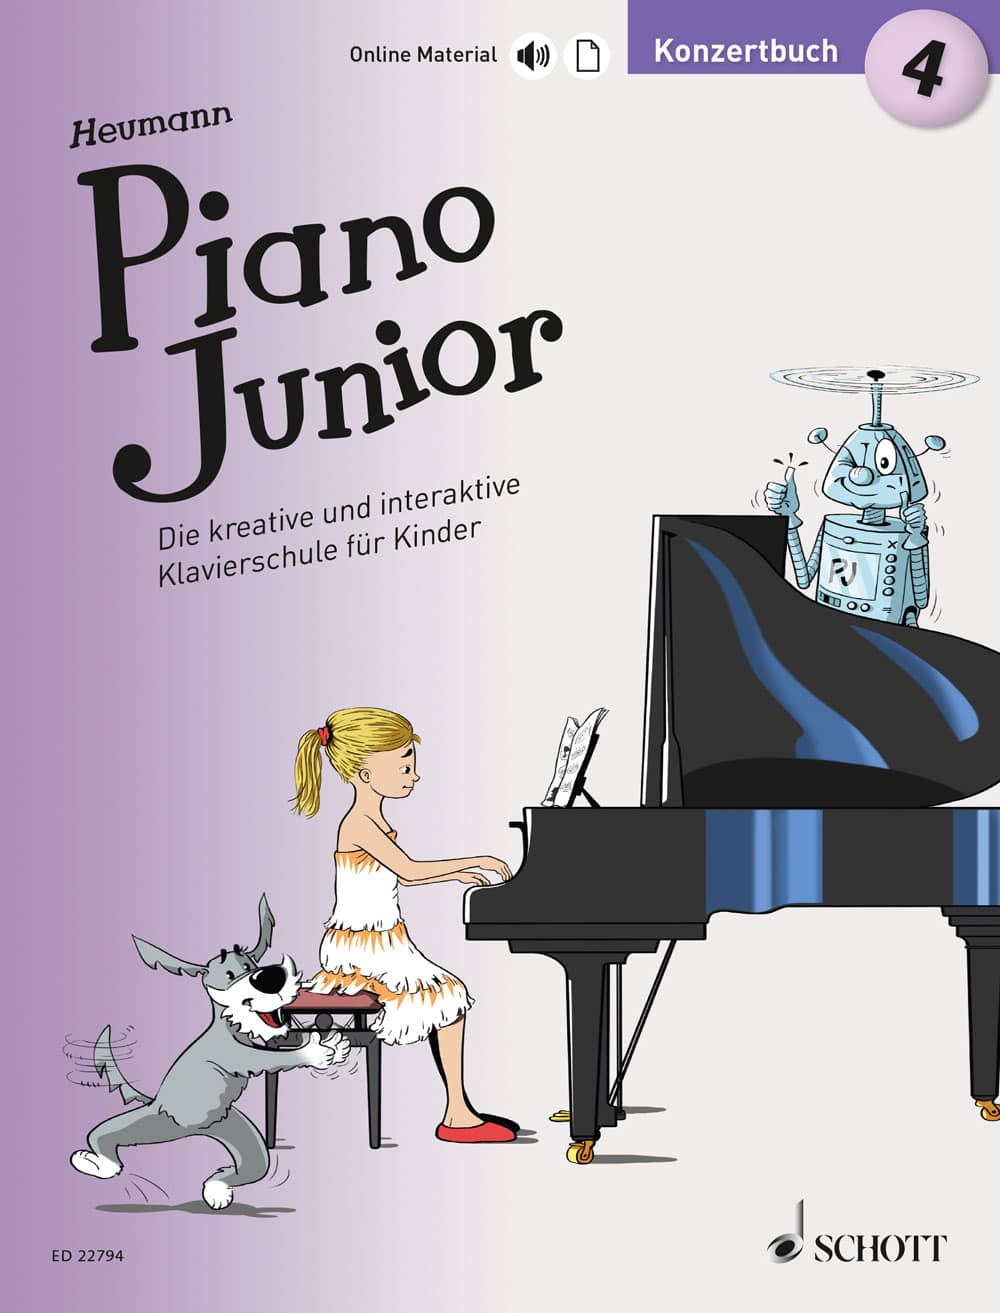 Piano Junior: Konzertbuch, Band 4